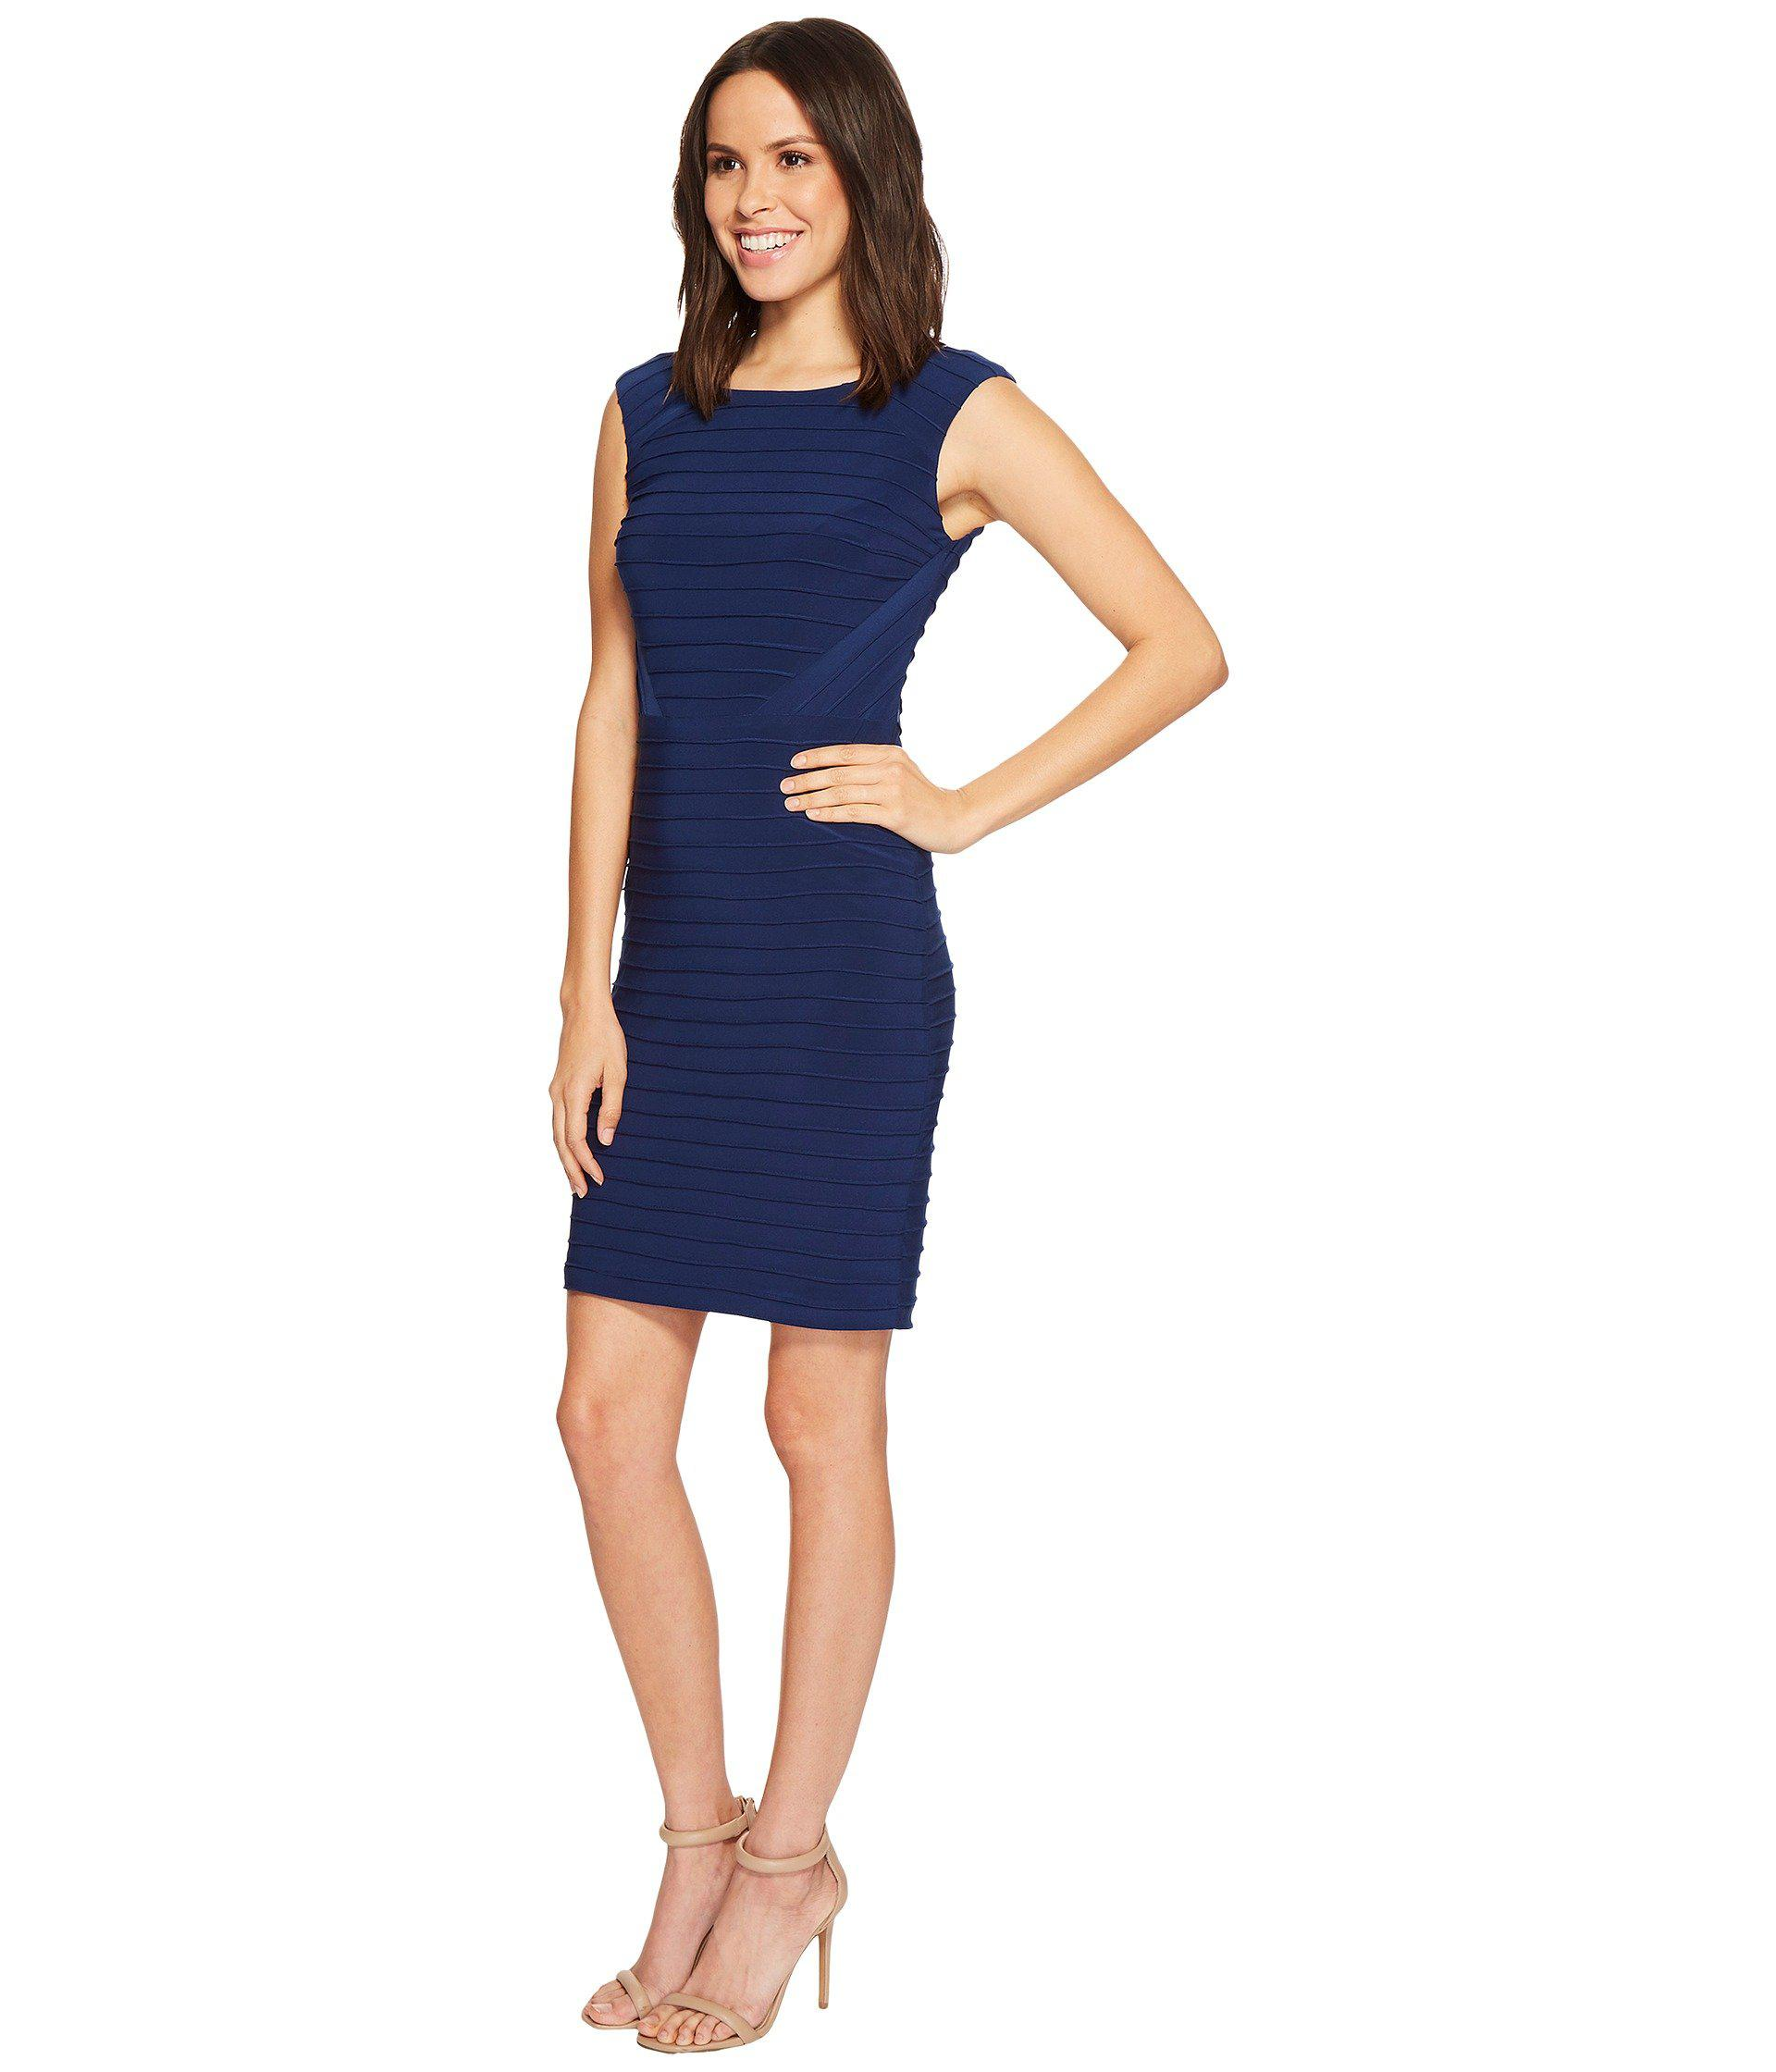 dfc7f70b5fd Lyst - Adrianna Papell Matte Jersey Banded Dress With Lace Yoke And Sleeves  in Blue - Save 49%